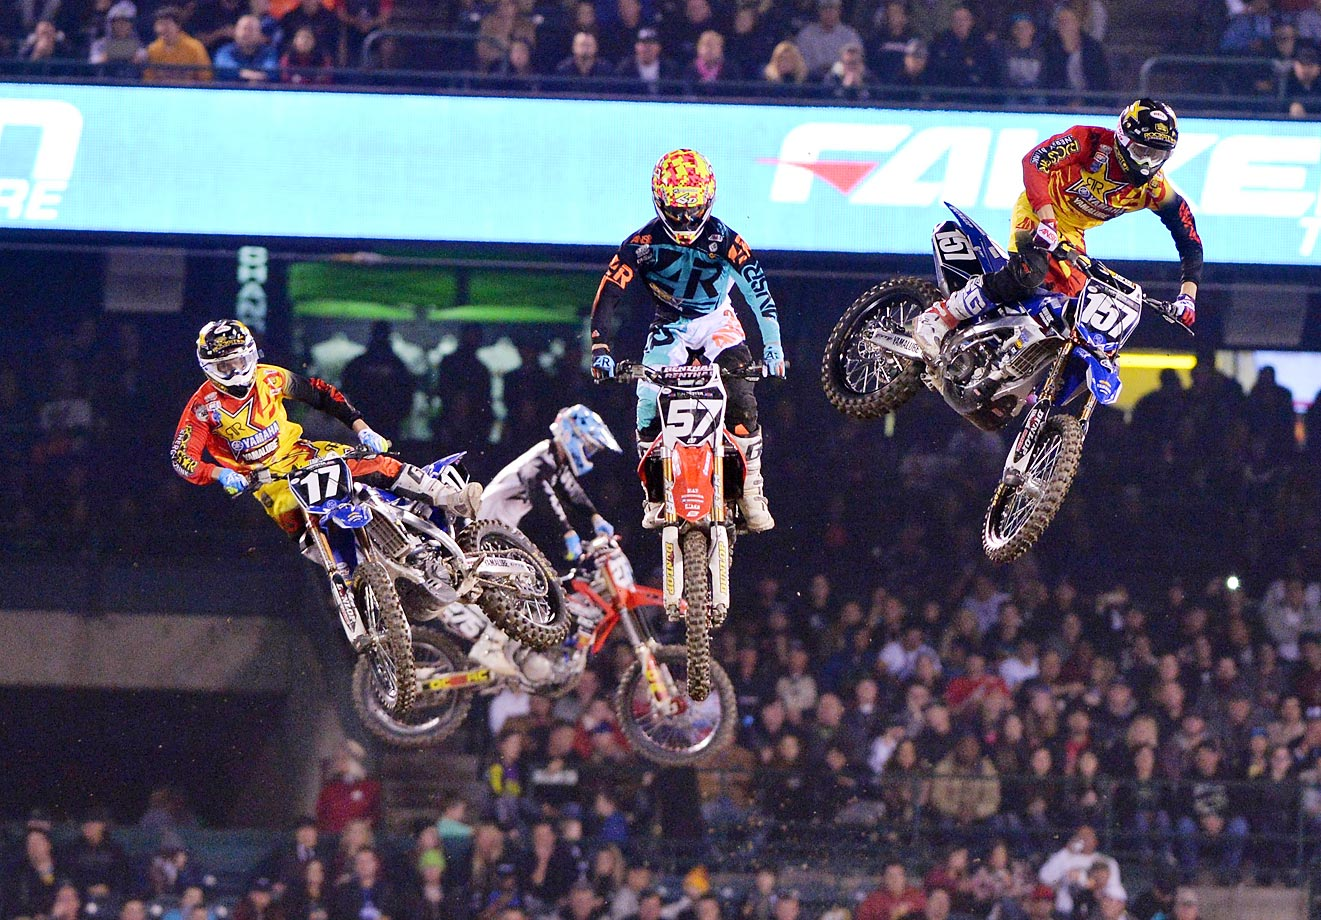 Cooper Webb (17) and teammate Aaron Plessinger (157) battle around midpack at the Monster Energy/AMA Supercross at Angel Stadium in Anaheim.